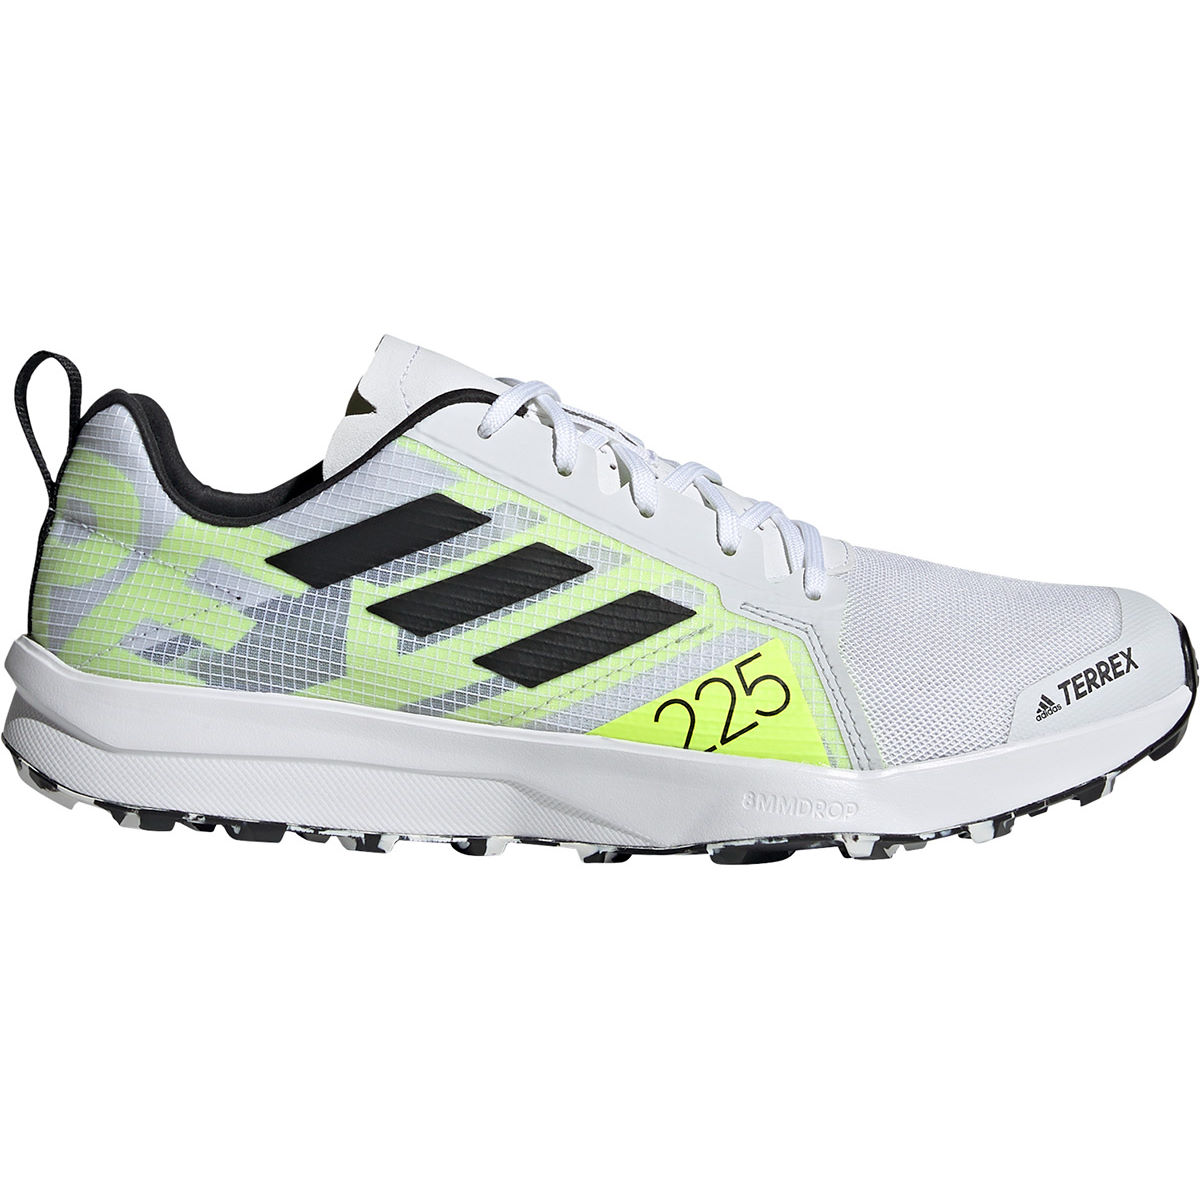 Adidas Terrex Speed Flow Trail Running Shoes - Uk 8.5  Trail Shoes